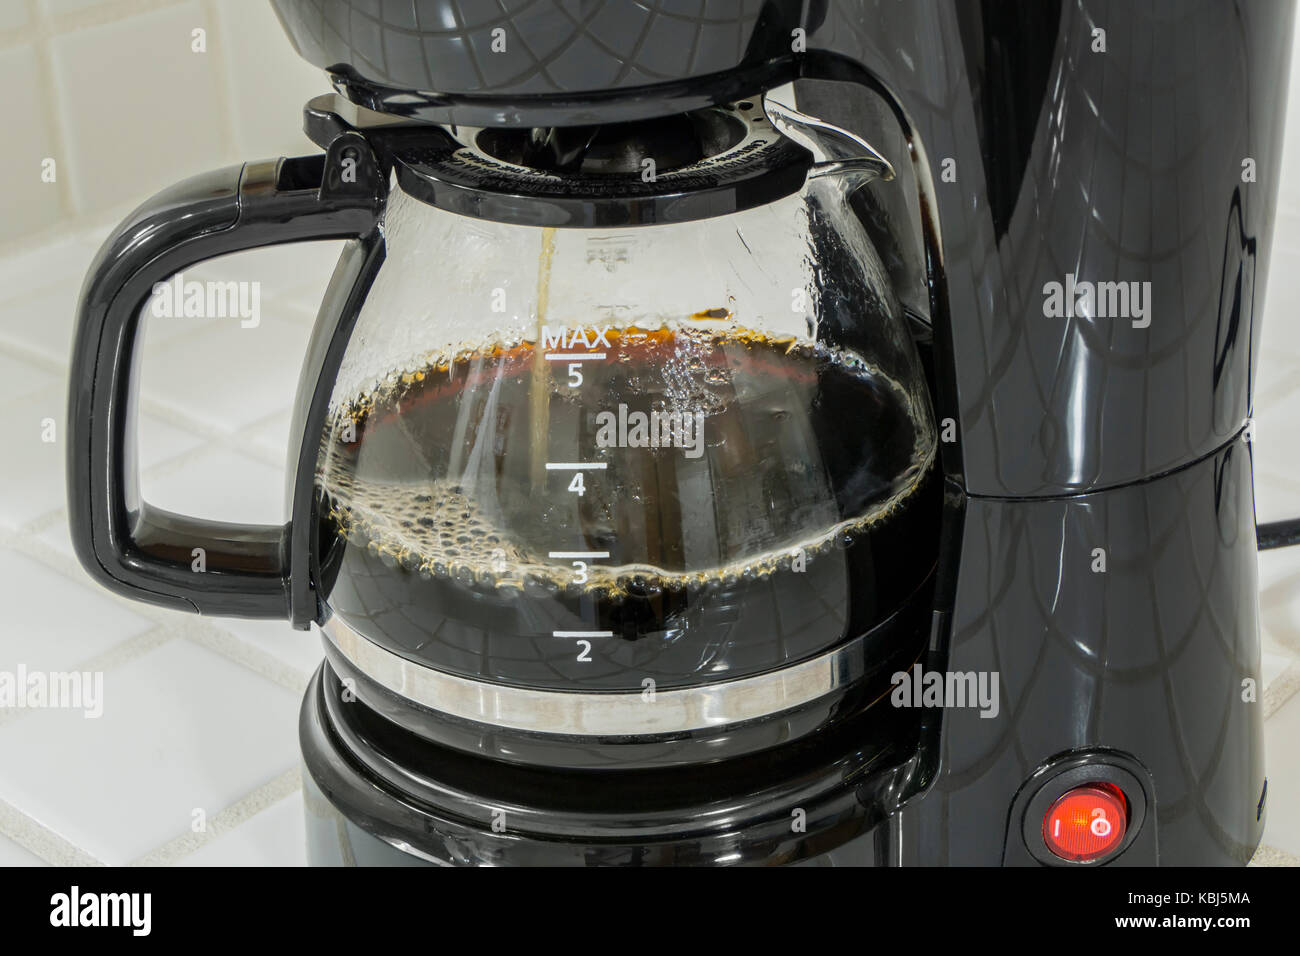 Coffee maker pot filling close up. - Stock Image